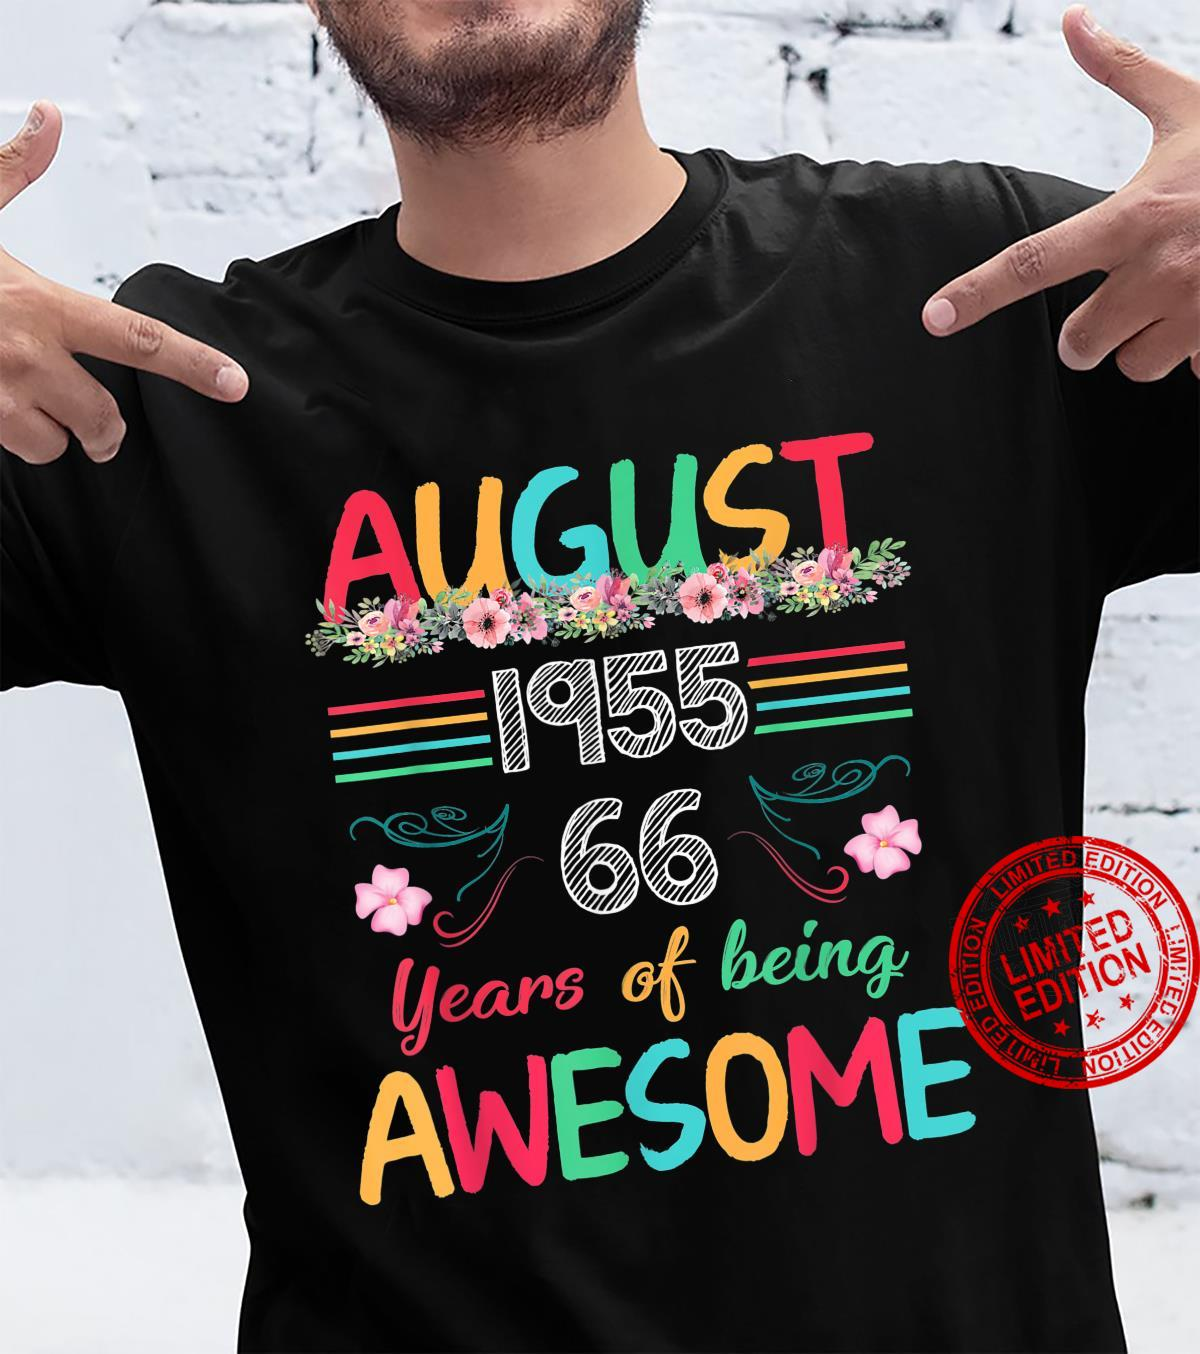 August 1955 Shirt Turning 66 Years Of Being Awesome Shirt